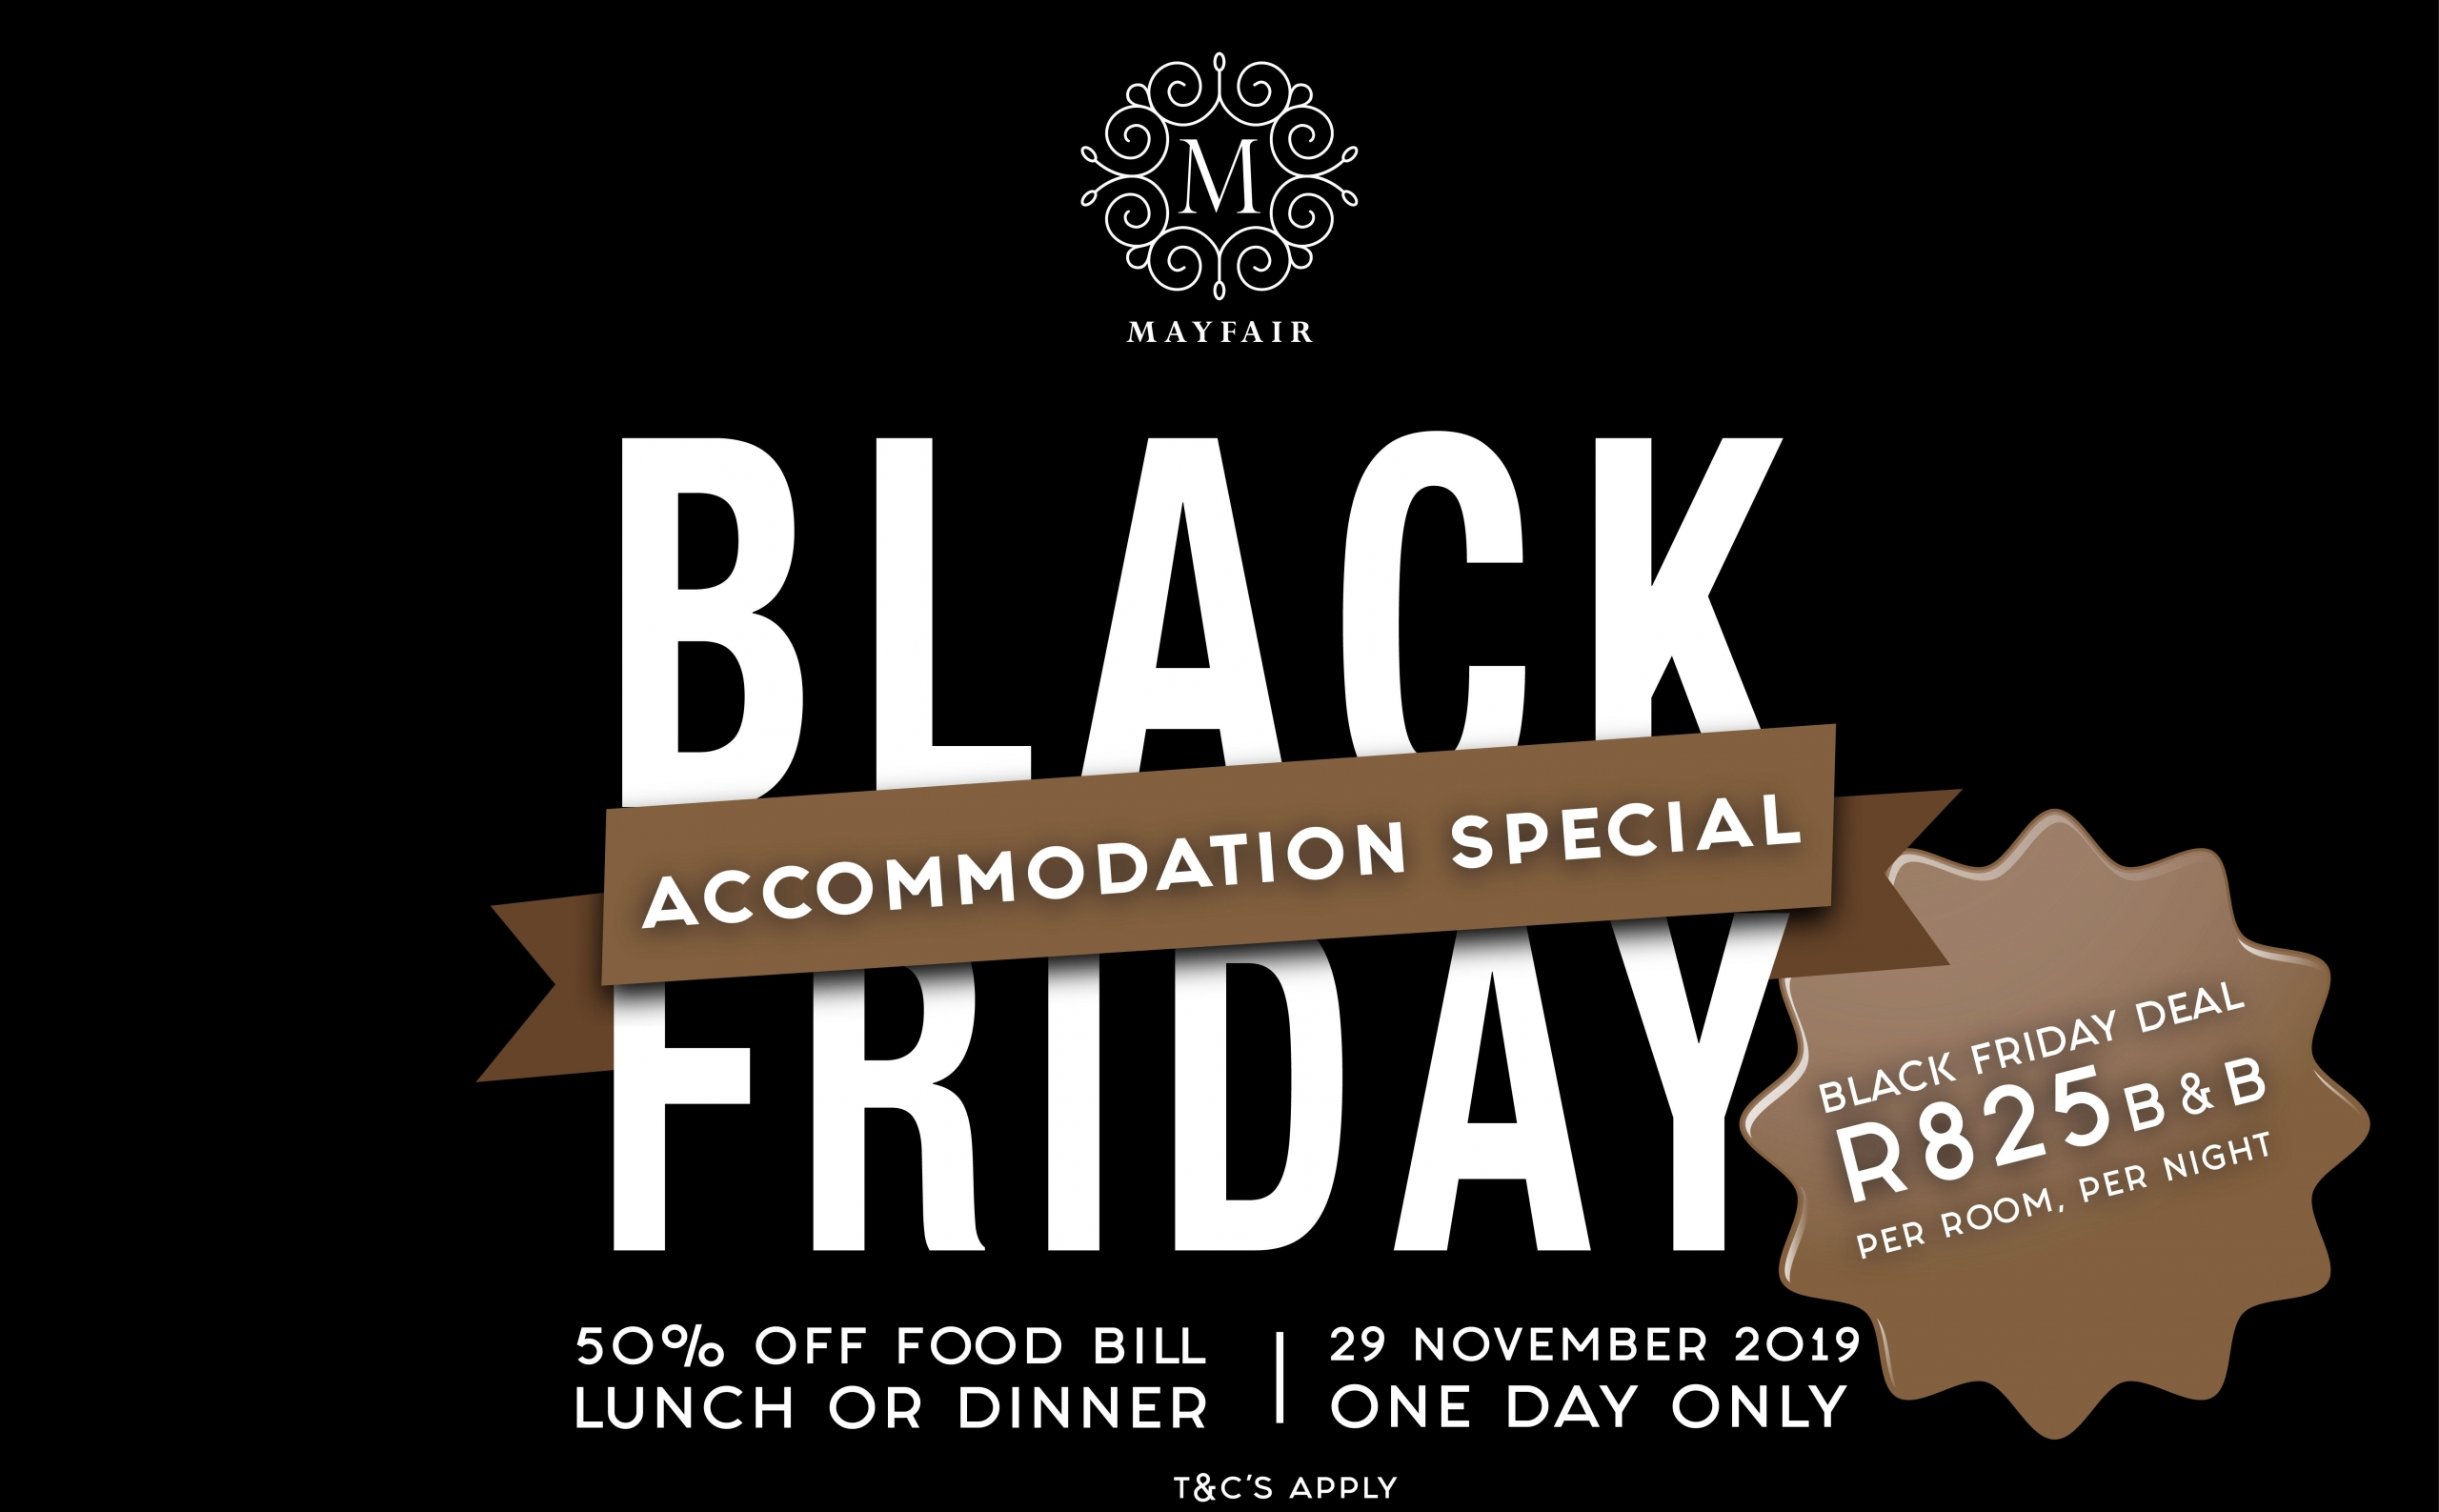 Mayfair Hotel | Black Friday Accommodation Special